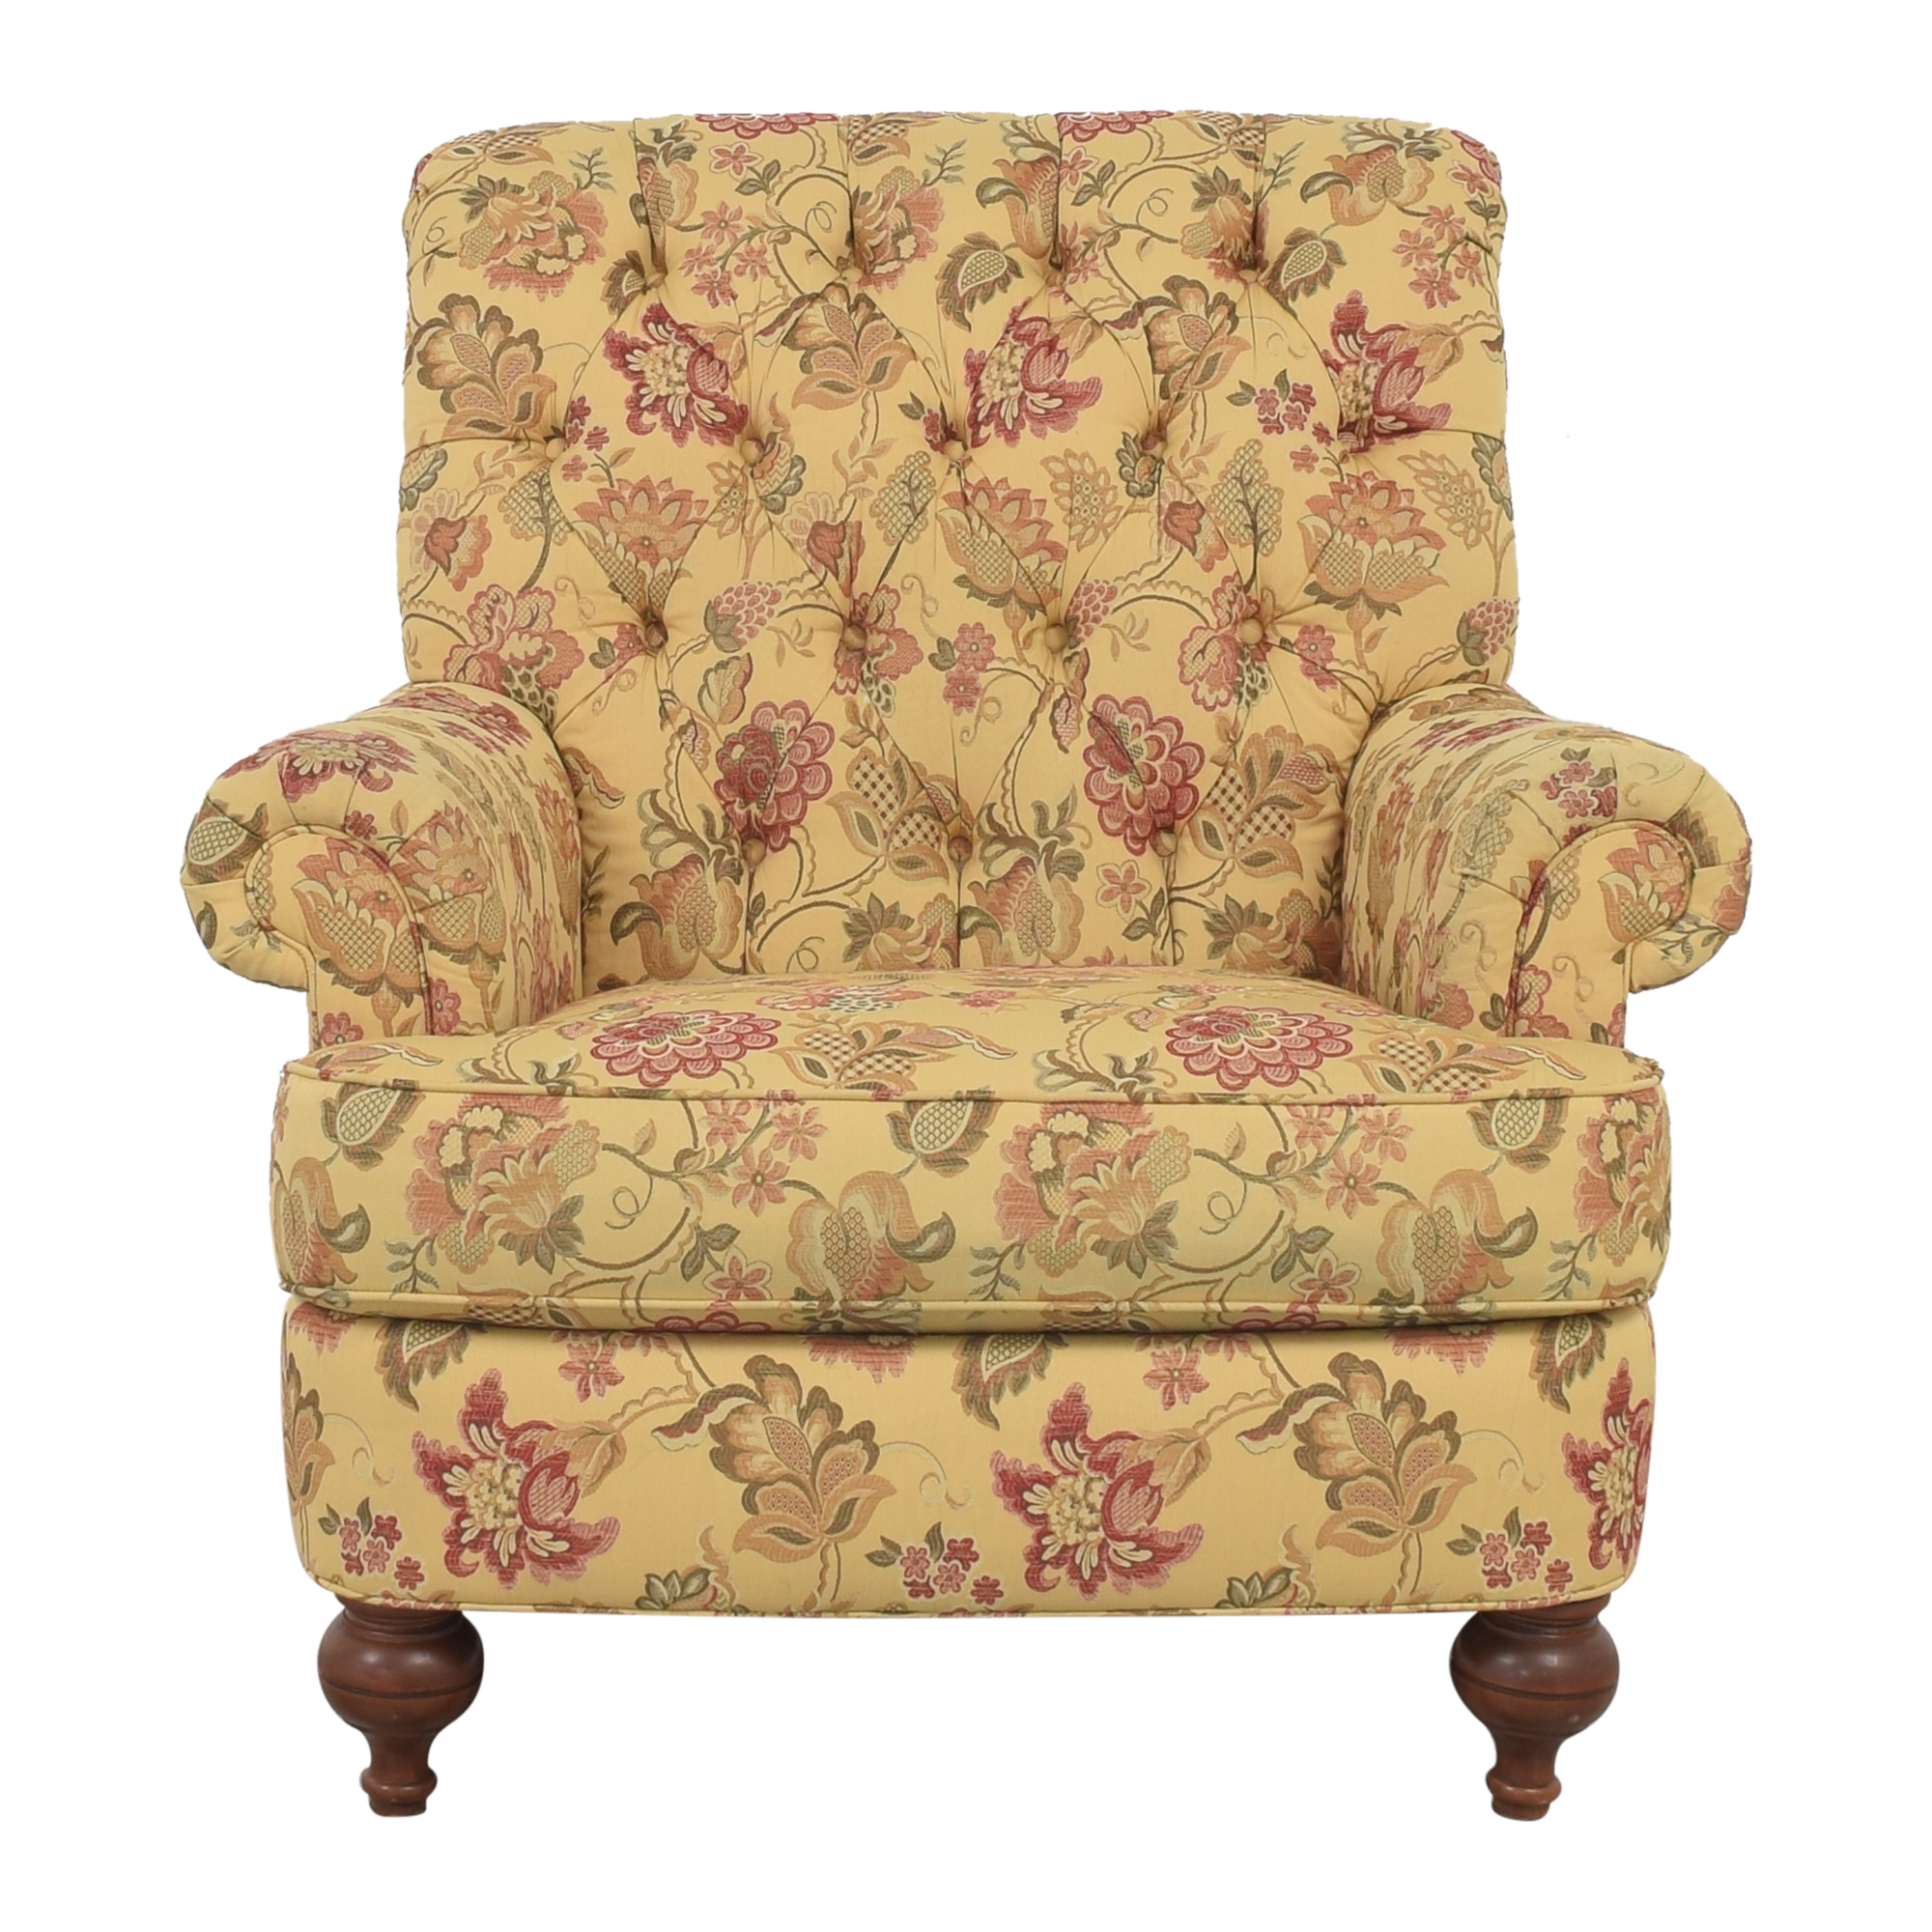 Ethan Allen Shawe Chair sale